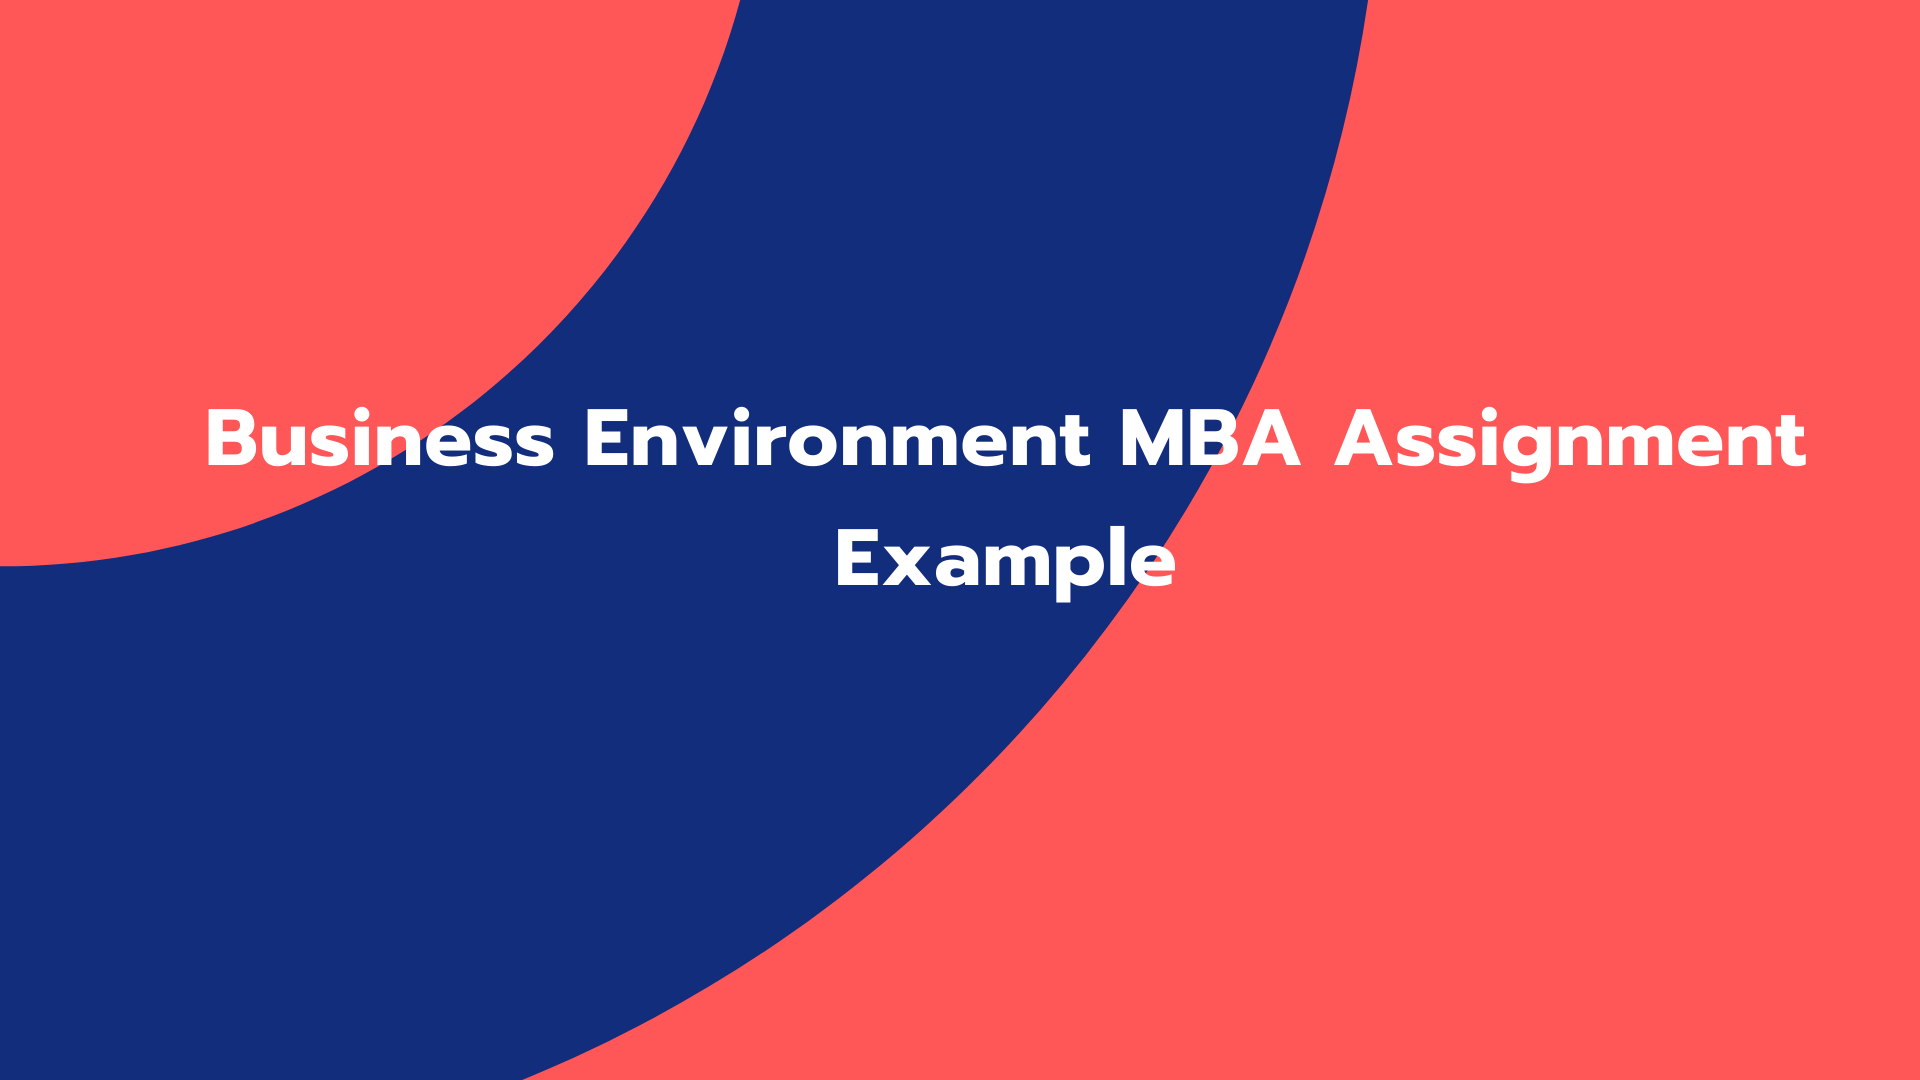 Business Environment MBA Assignment Example